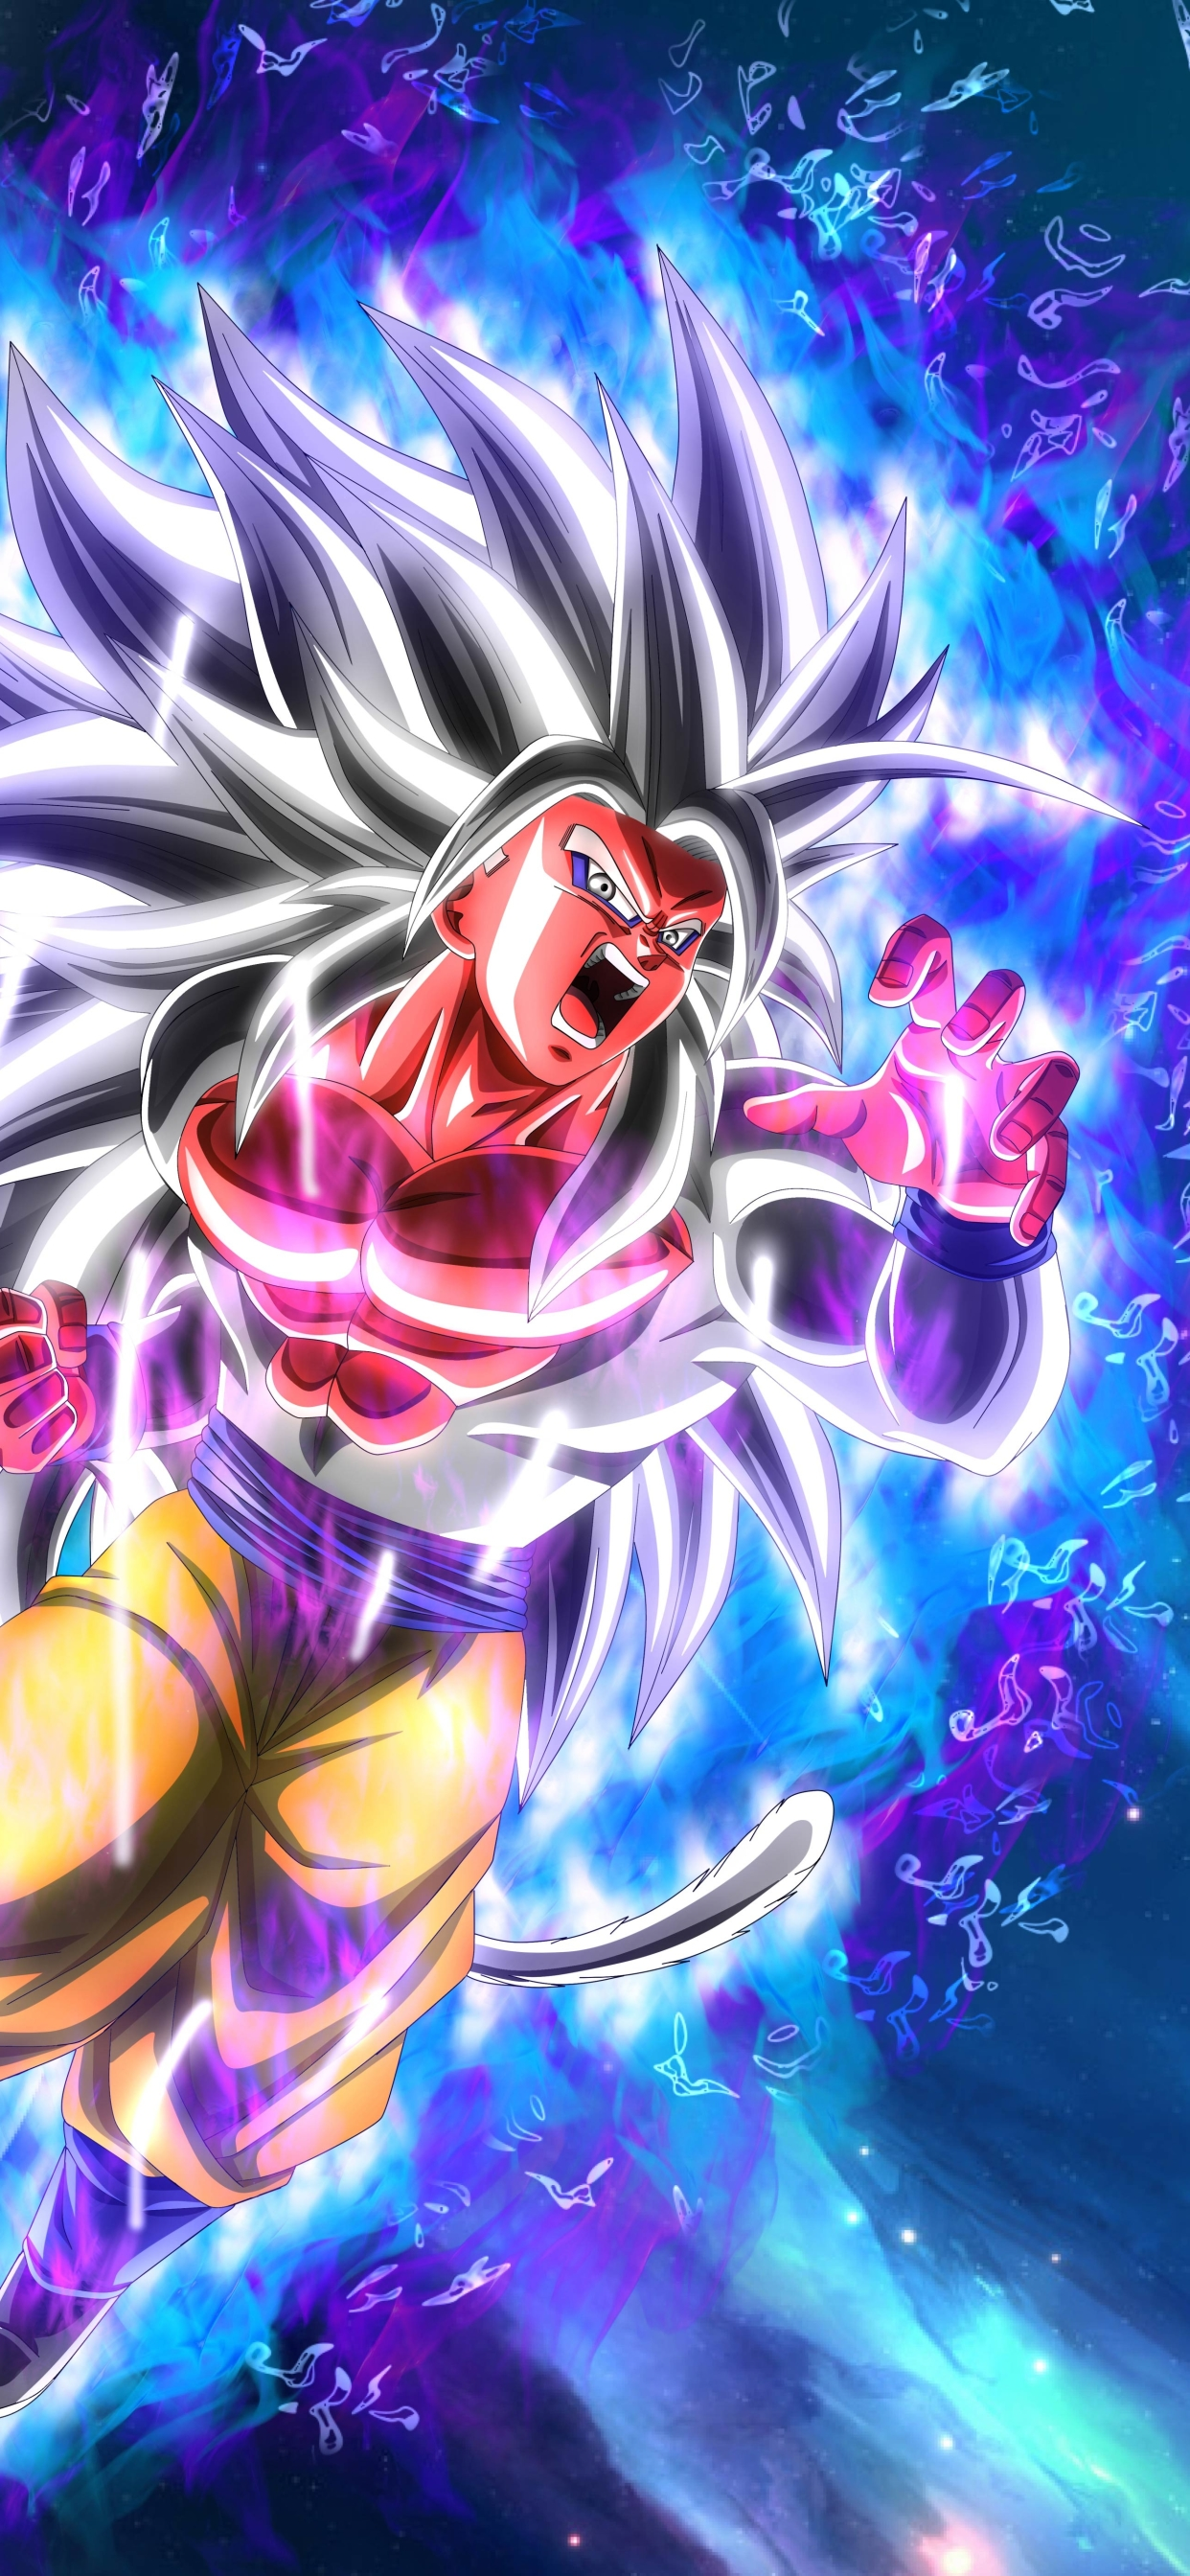 1242x2688 Goku Ssj5 8k Iphone Xs Max Wallpaper Hd Anime 4k Wallpapers Images Photos And Background